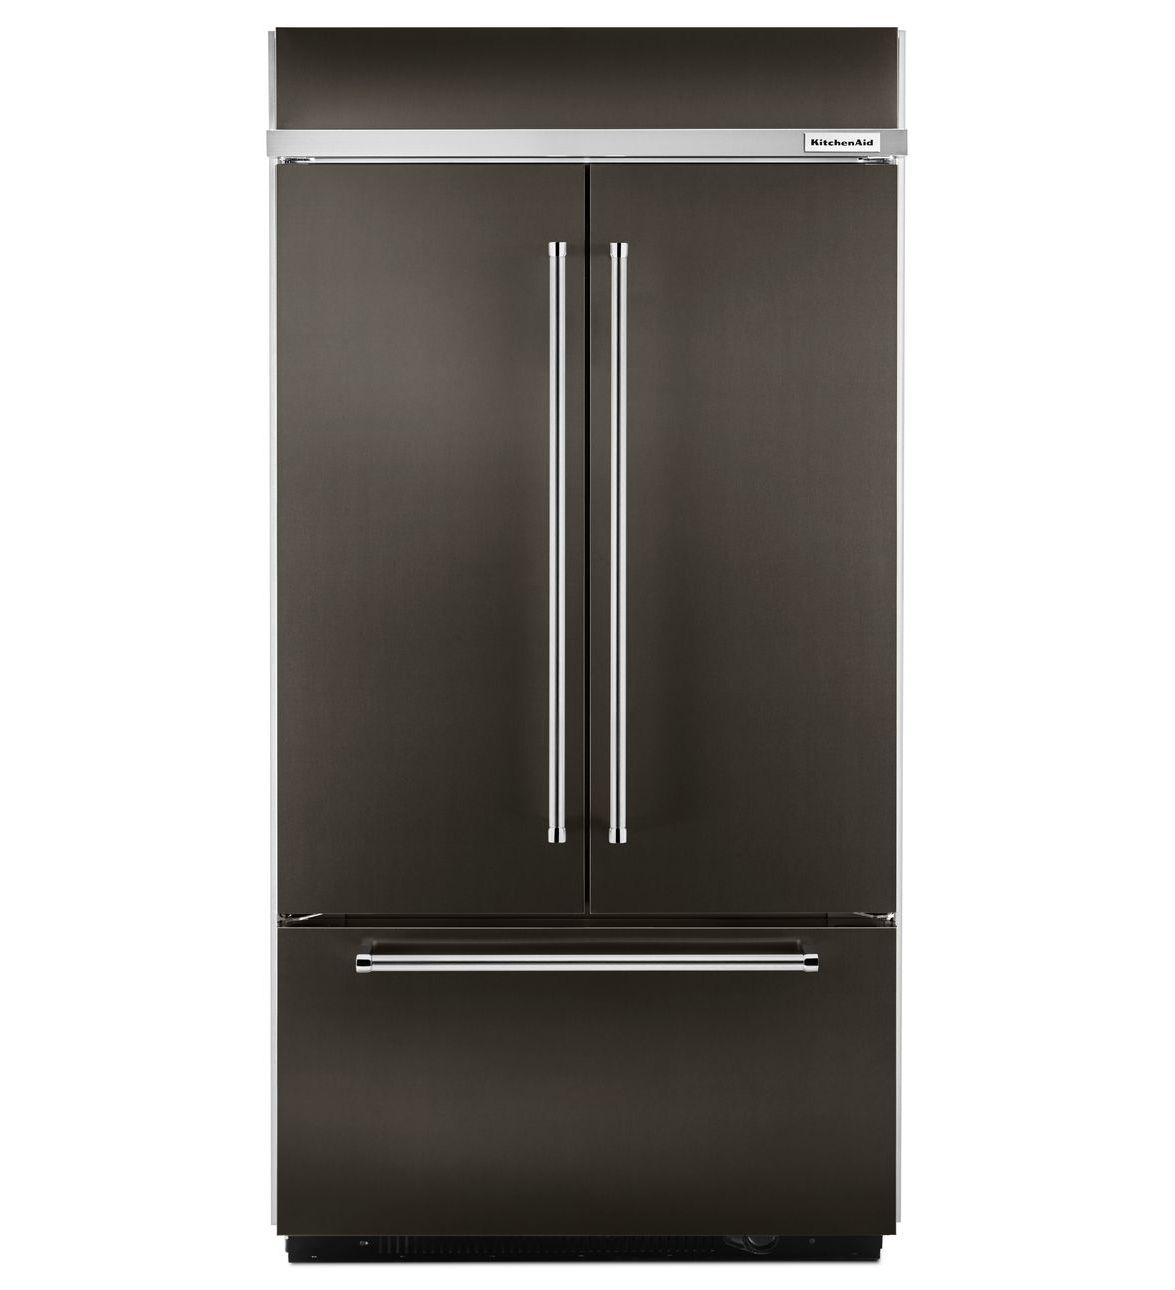 Newest kitchen remodel trend black stainless steel appliances